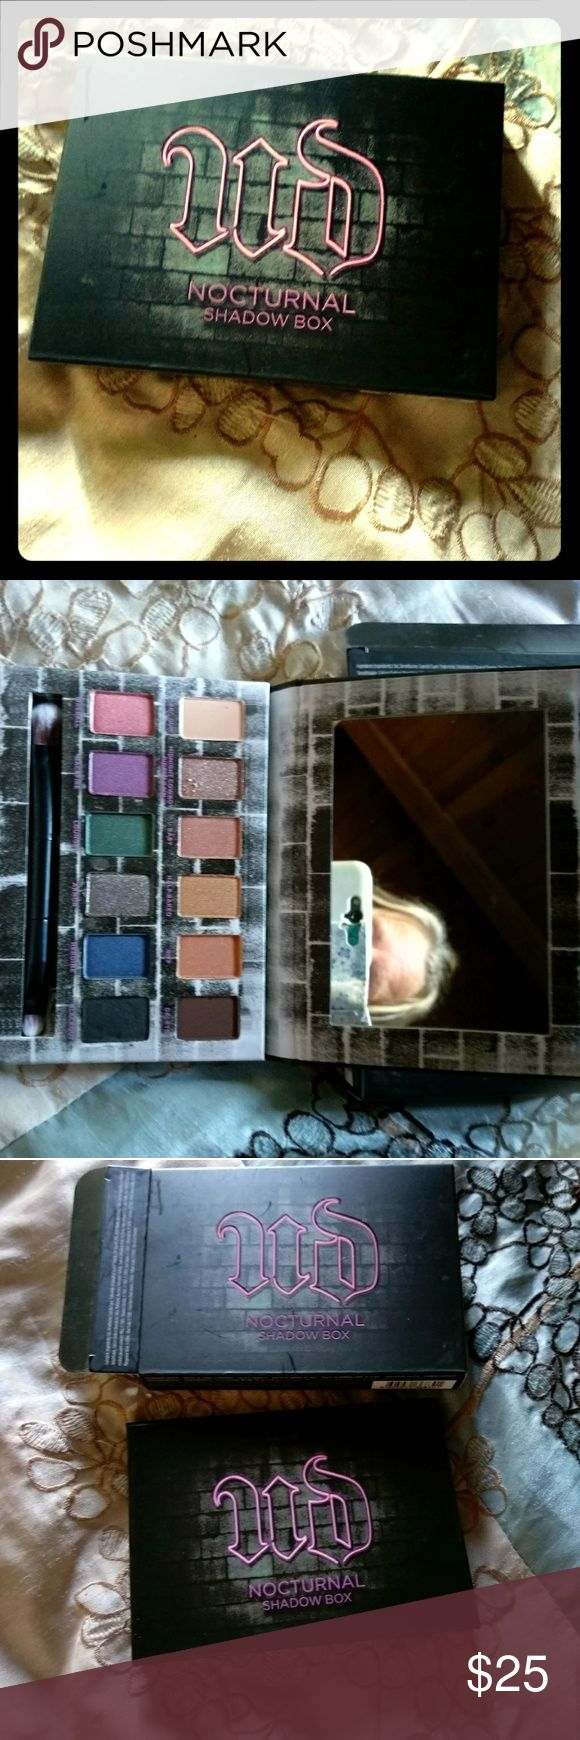 NEW Urban Decay Nocturnal Shadow box pallet Never been used or swatched. Brand new in box Urban Decay Makeup